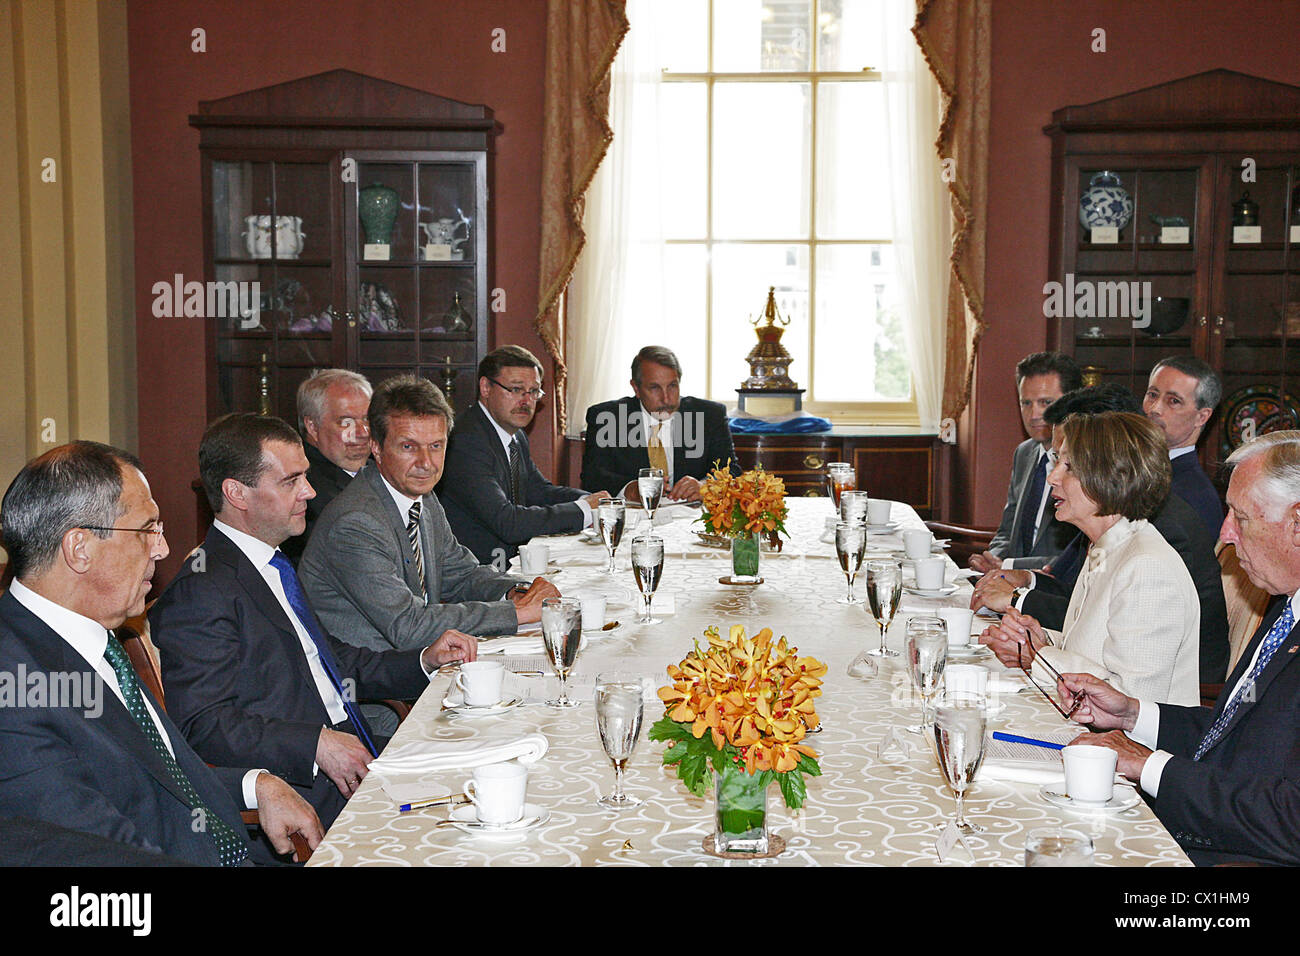 WASHINGTON, USA. JUNE 25, 2010. Russia's foreign minister Sergei Lavrov, Russian Federation president Dmitry Medvedev Stock Photo